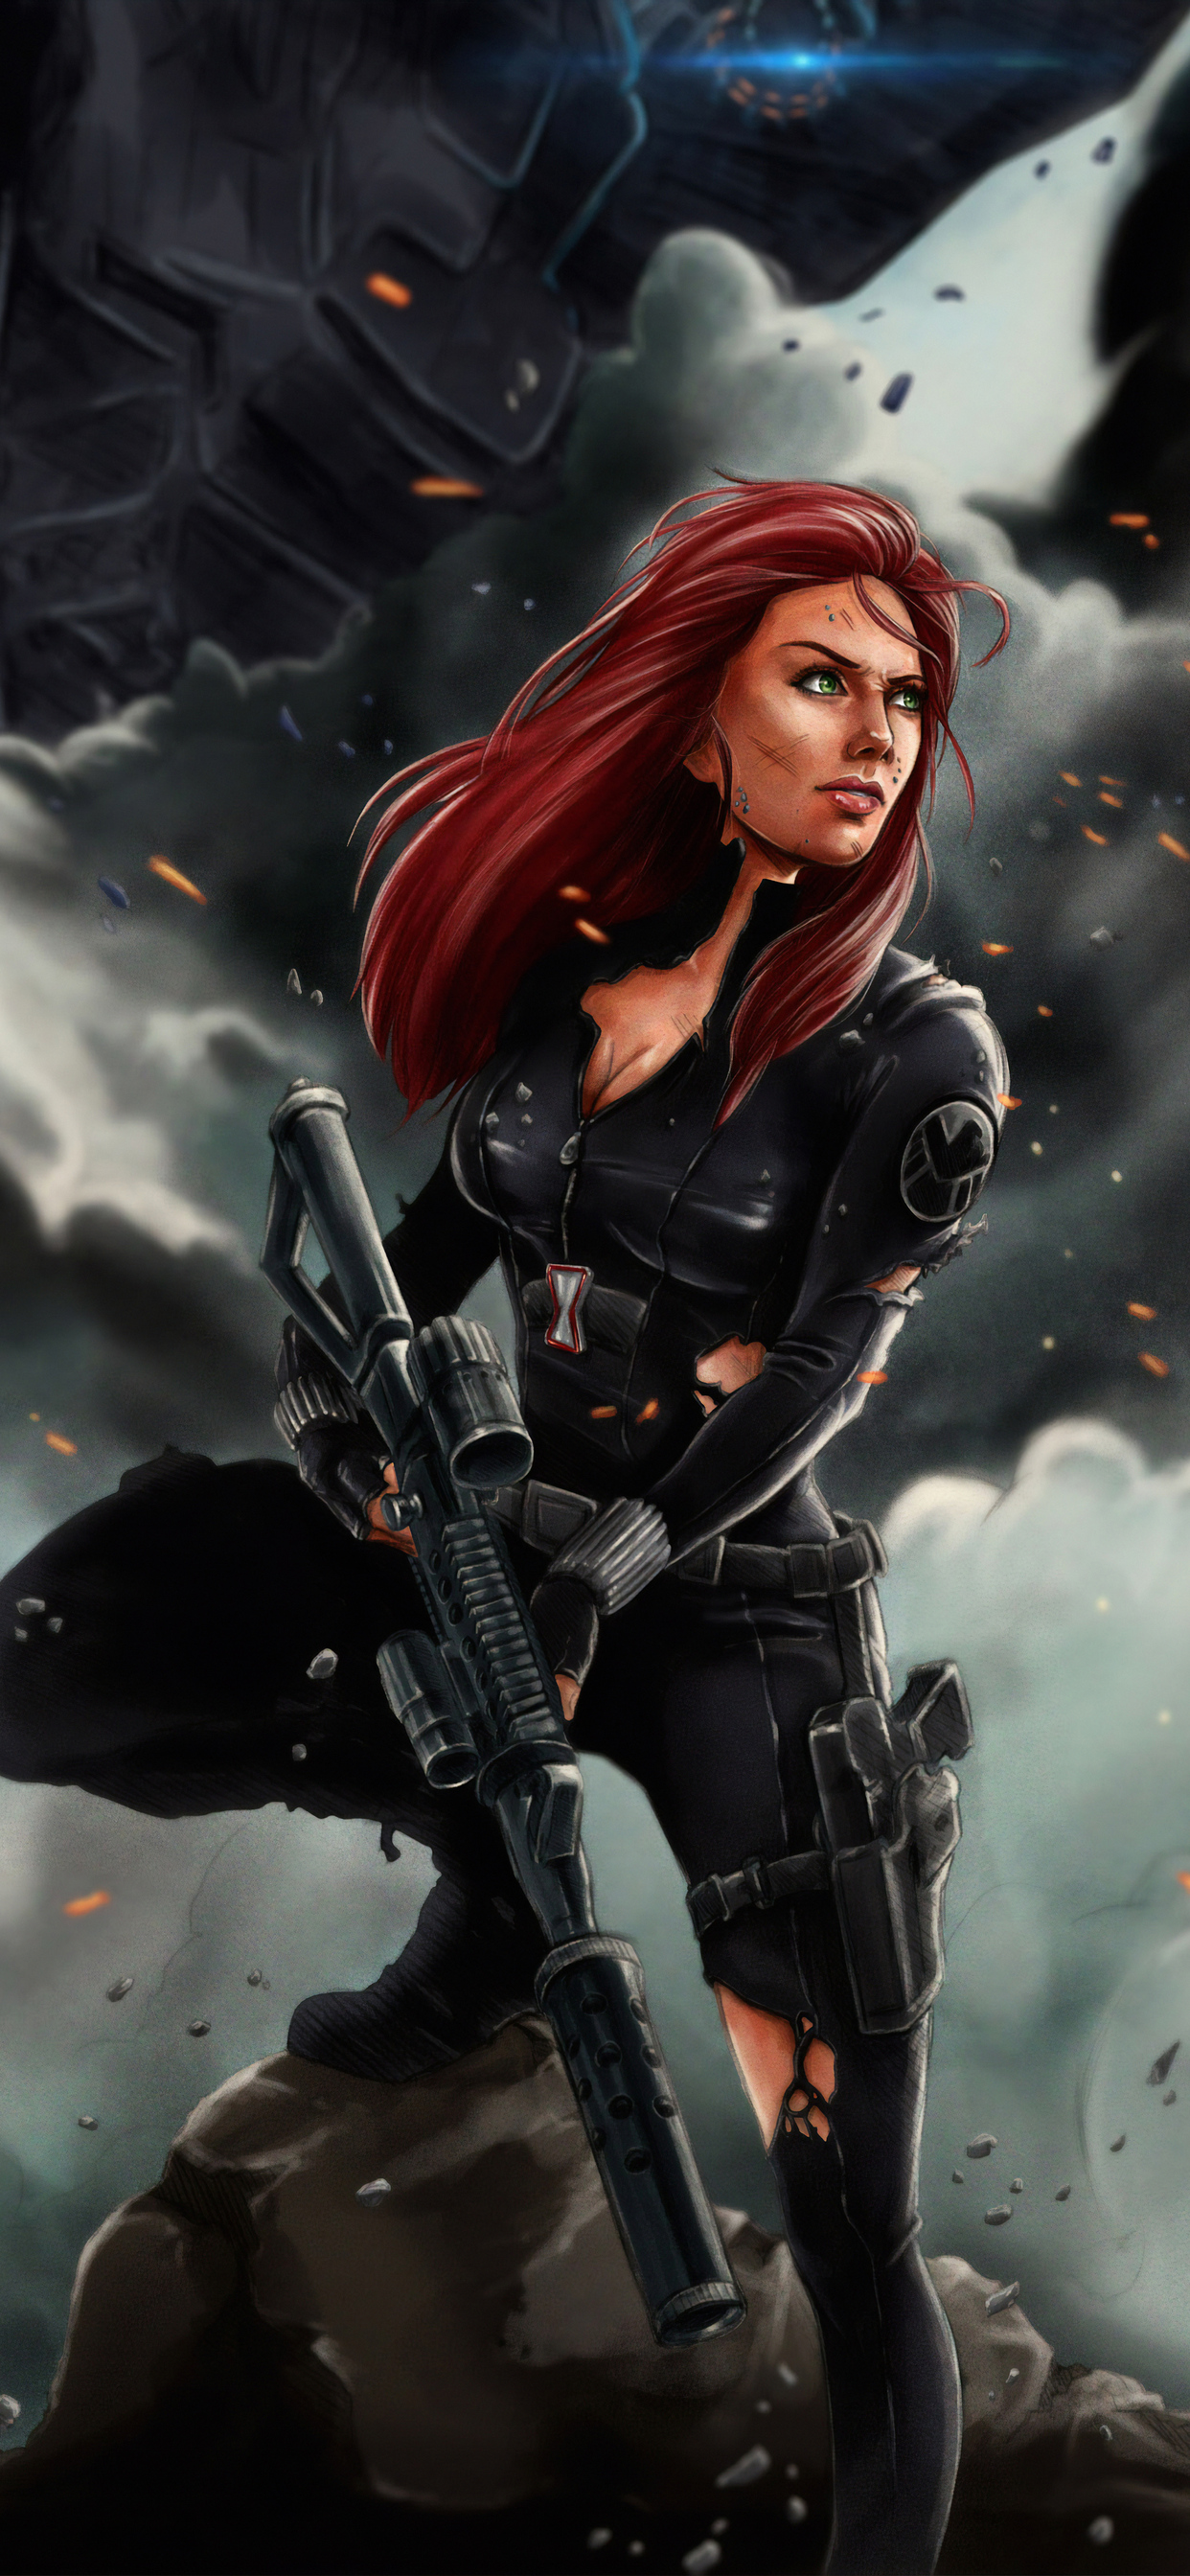 1242x2688 Black Widow 4k Art Iphone Xs Max Hd 4k Wallpapers